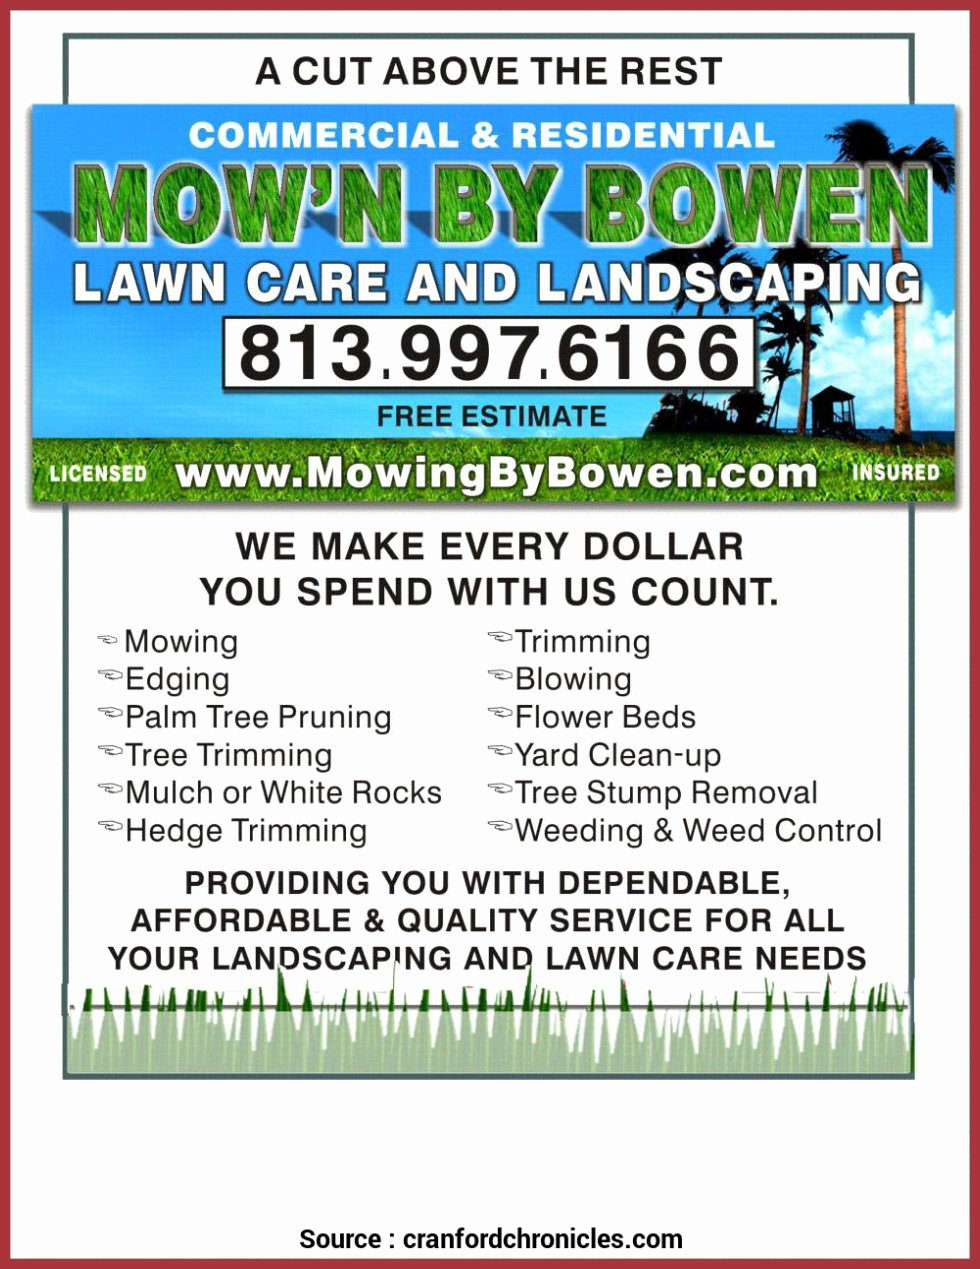 Lawn Care Advertising Flyers Best Of Special Mowing Business Flyers Flyers Lawn Mowing Business Beautiful Free Lawn Care Flyer